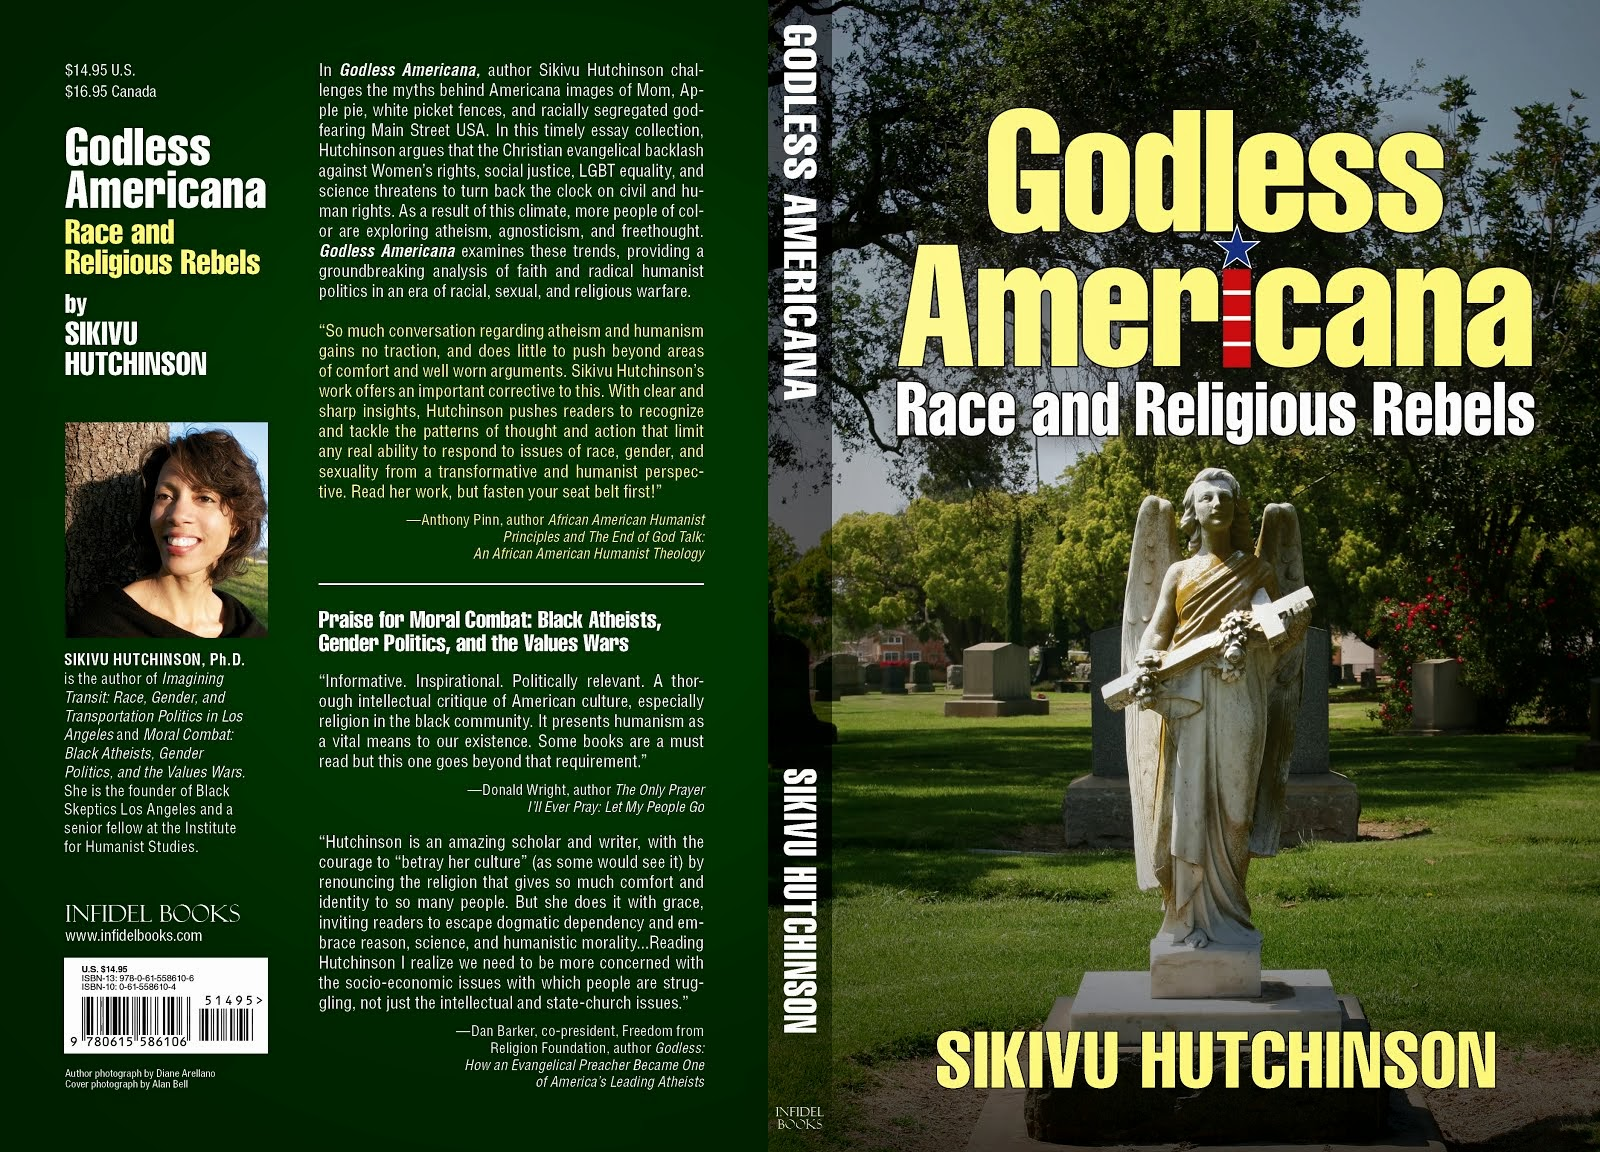 Godless Americana: Race and Religious Rebels